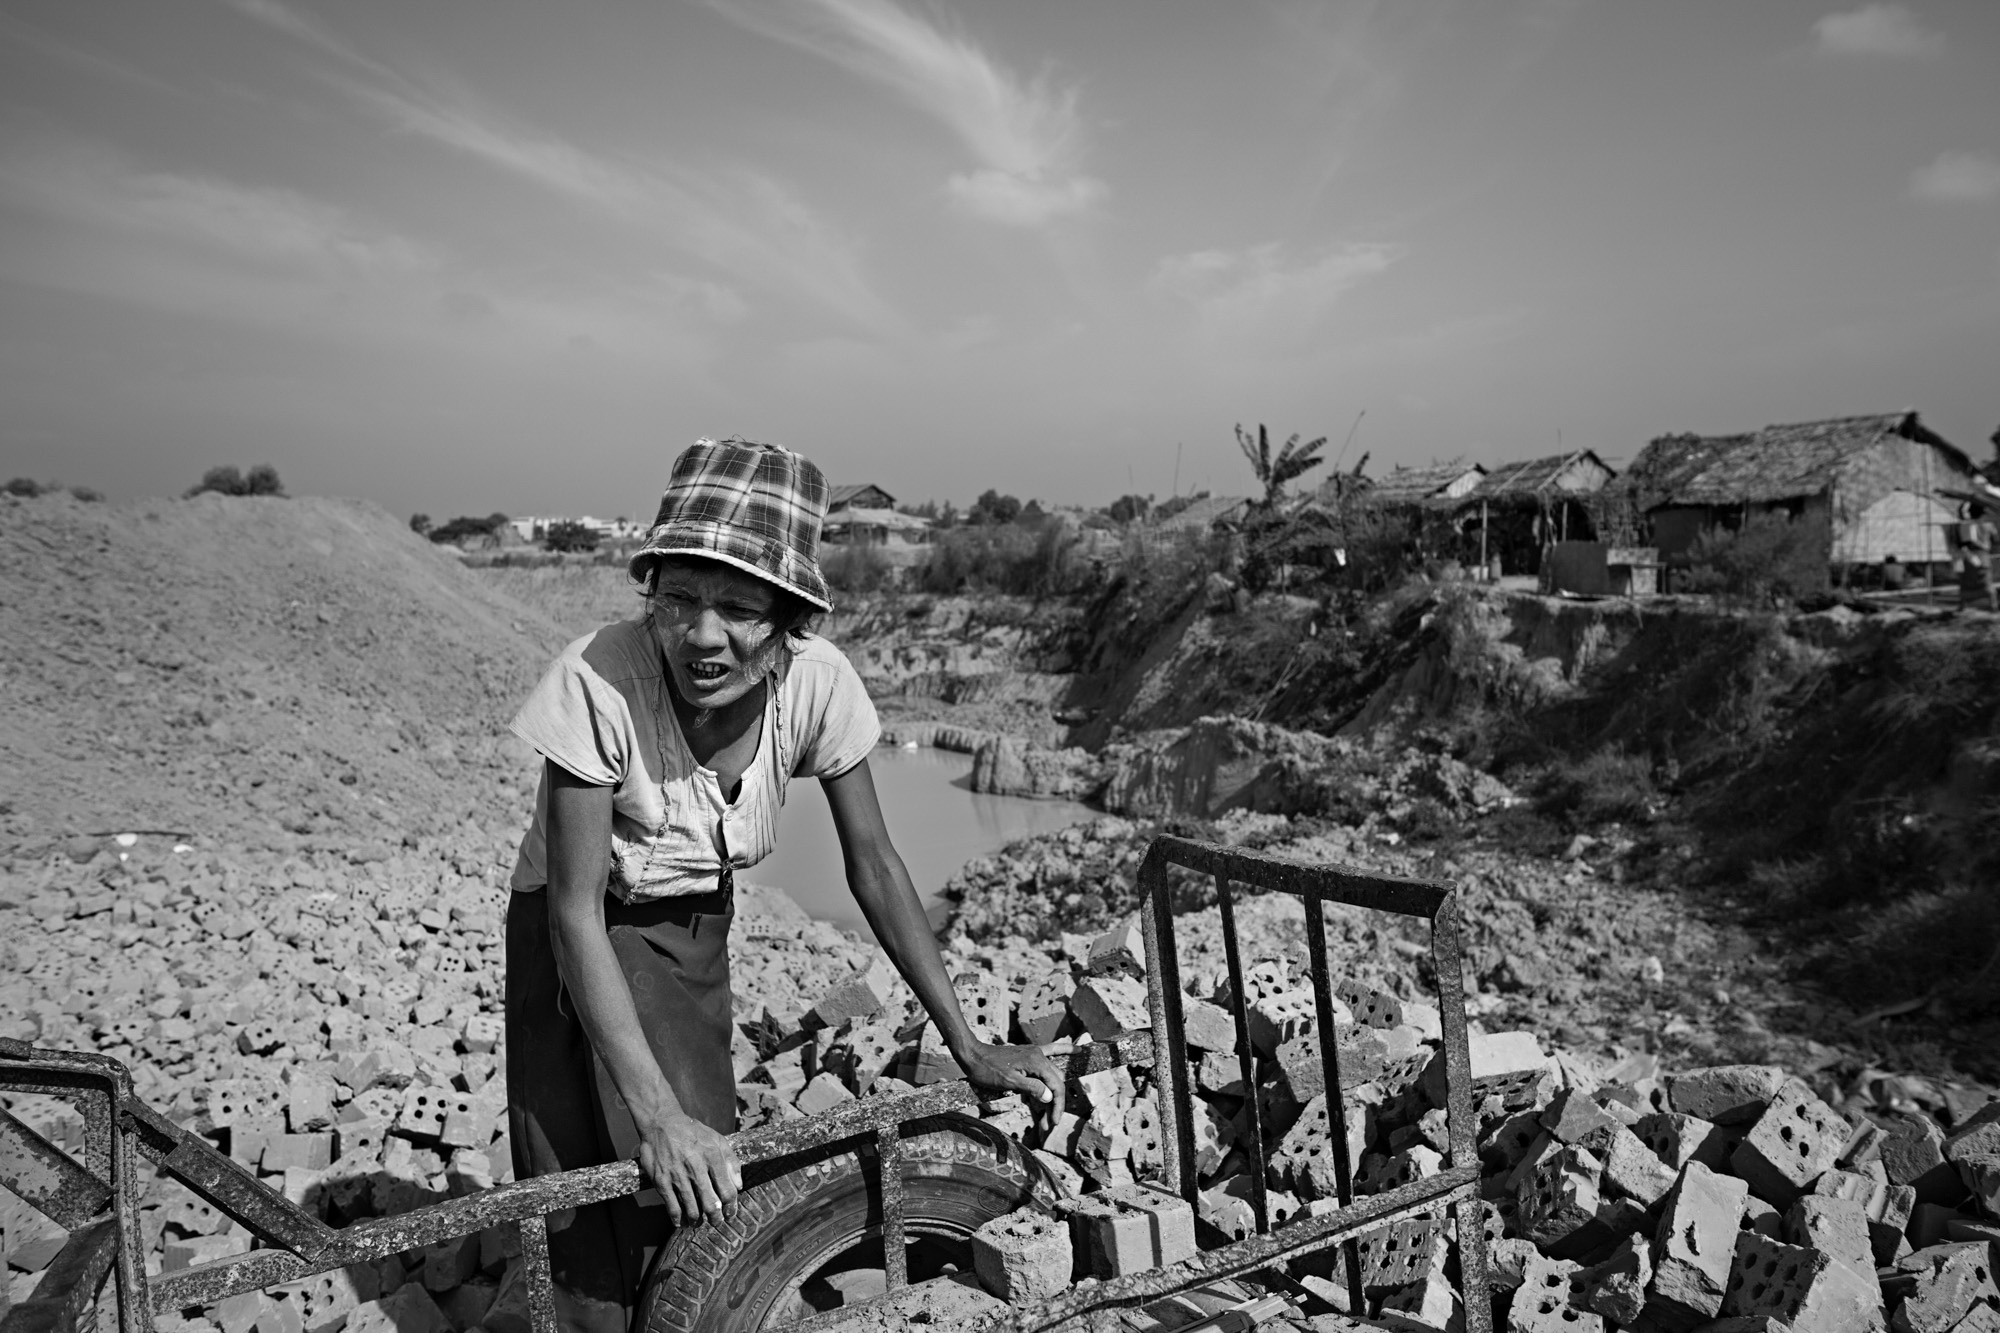 Than Nwe rests in the hot midday sun, leaning on a rusted cart she has been using to haul ruined bricks to a discard pile.